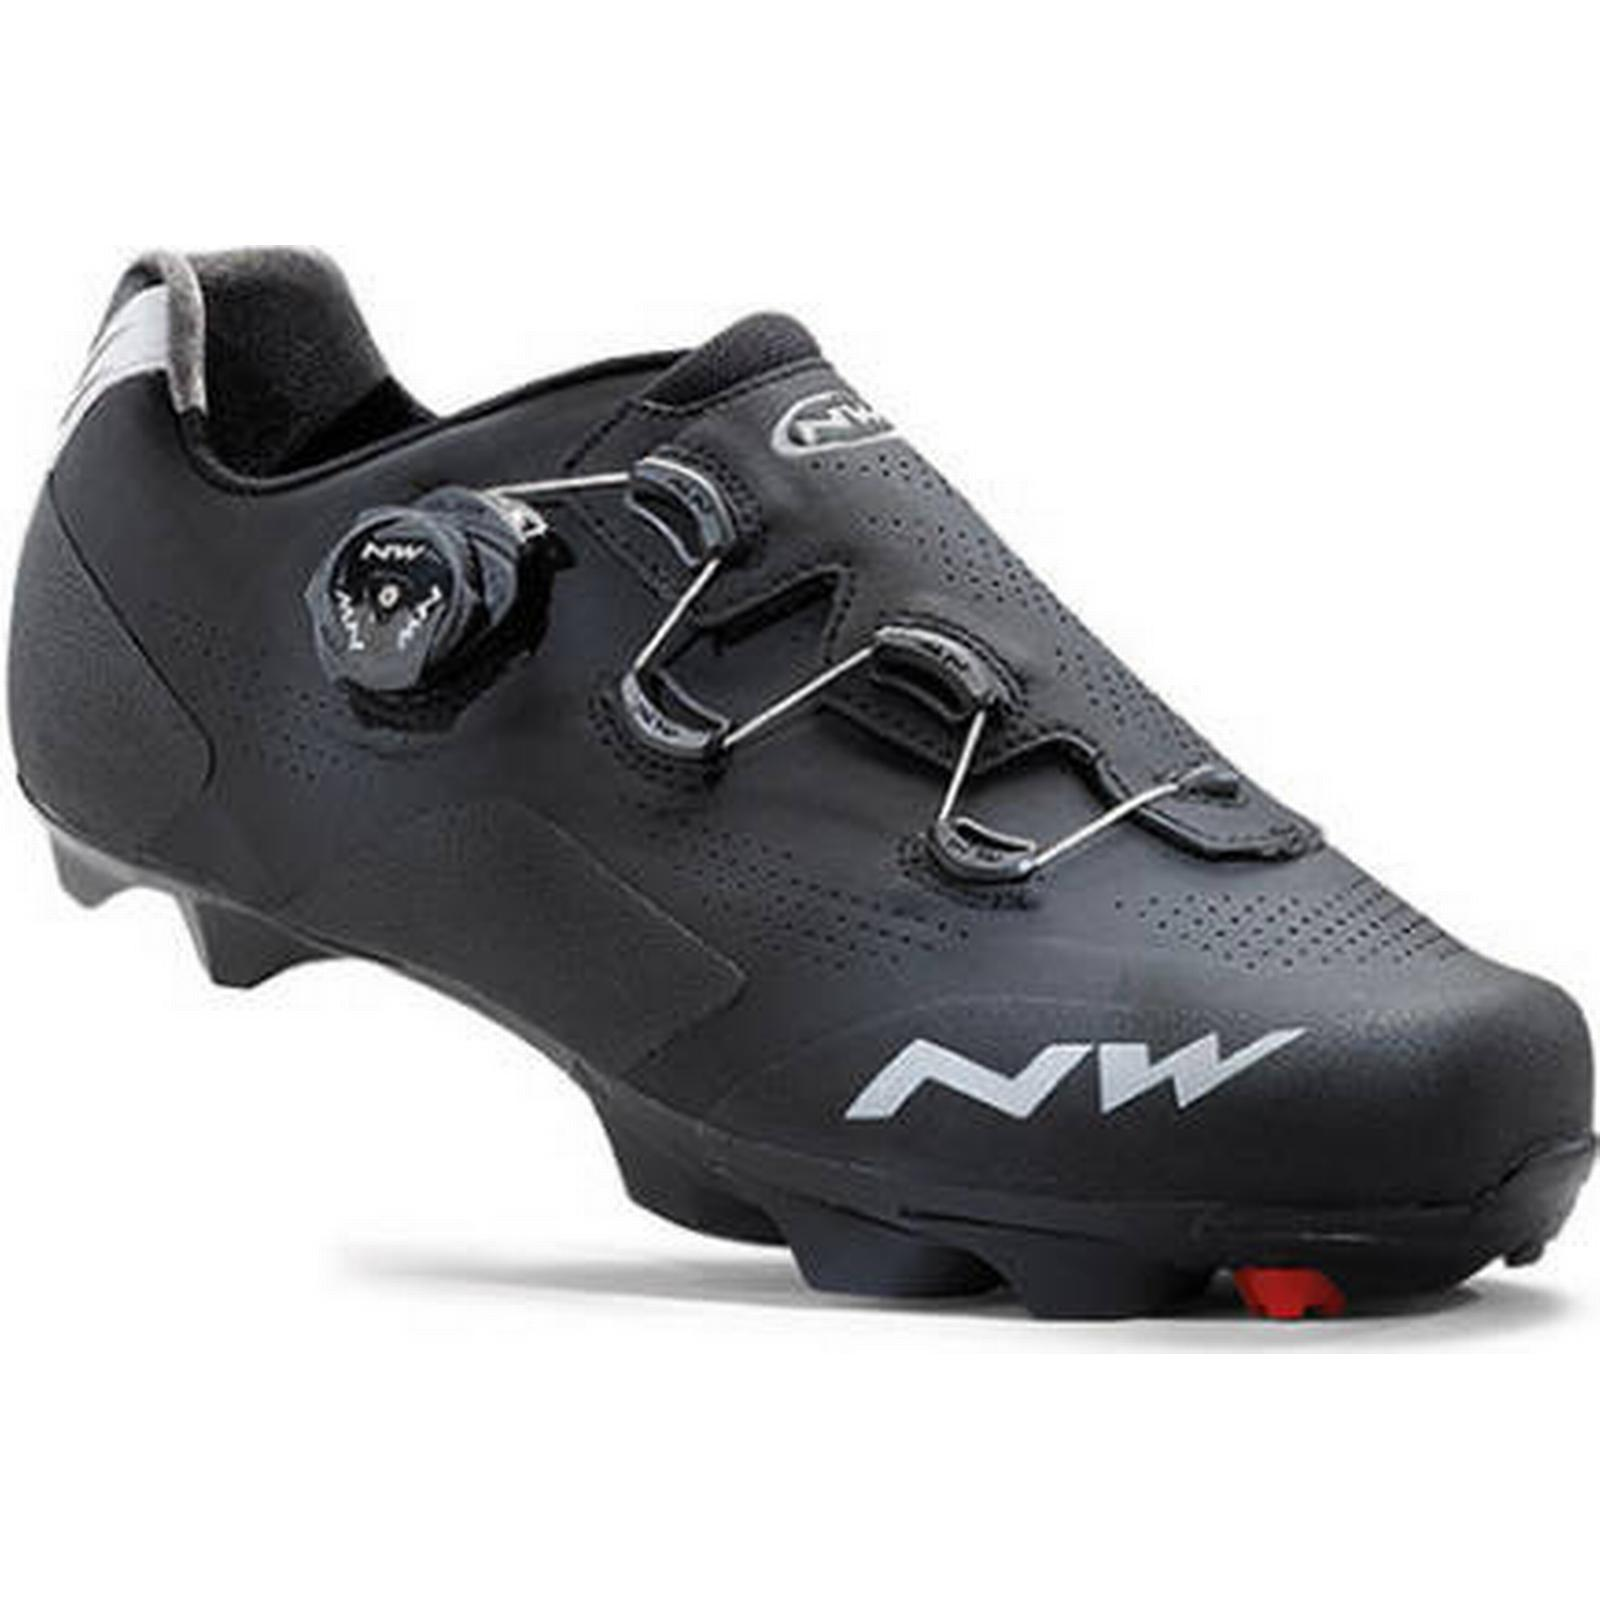 Northwave Shoe Raptor Thinsulate Winter MTB Shoe Northwave - Black / EU46 7e6da3